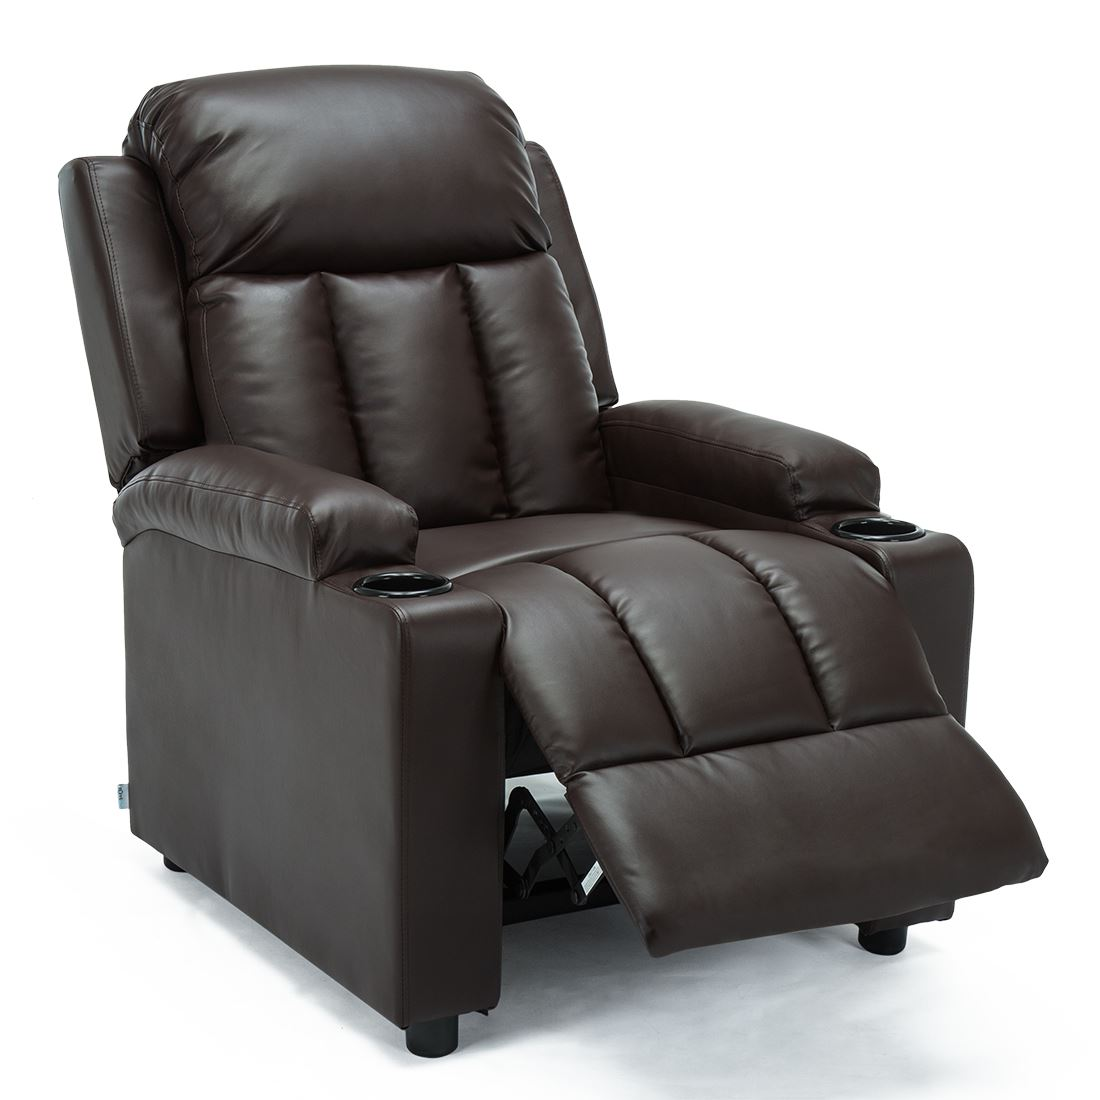 STUDIO-LEATHER-RECLINER-w-DRINK-HOLDERS-ARMCHAIR-SOFA-CHAIR-CINEMA-GAMING thumbnail 14